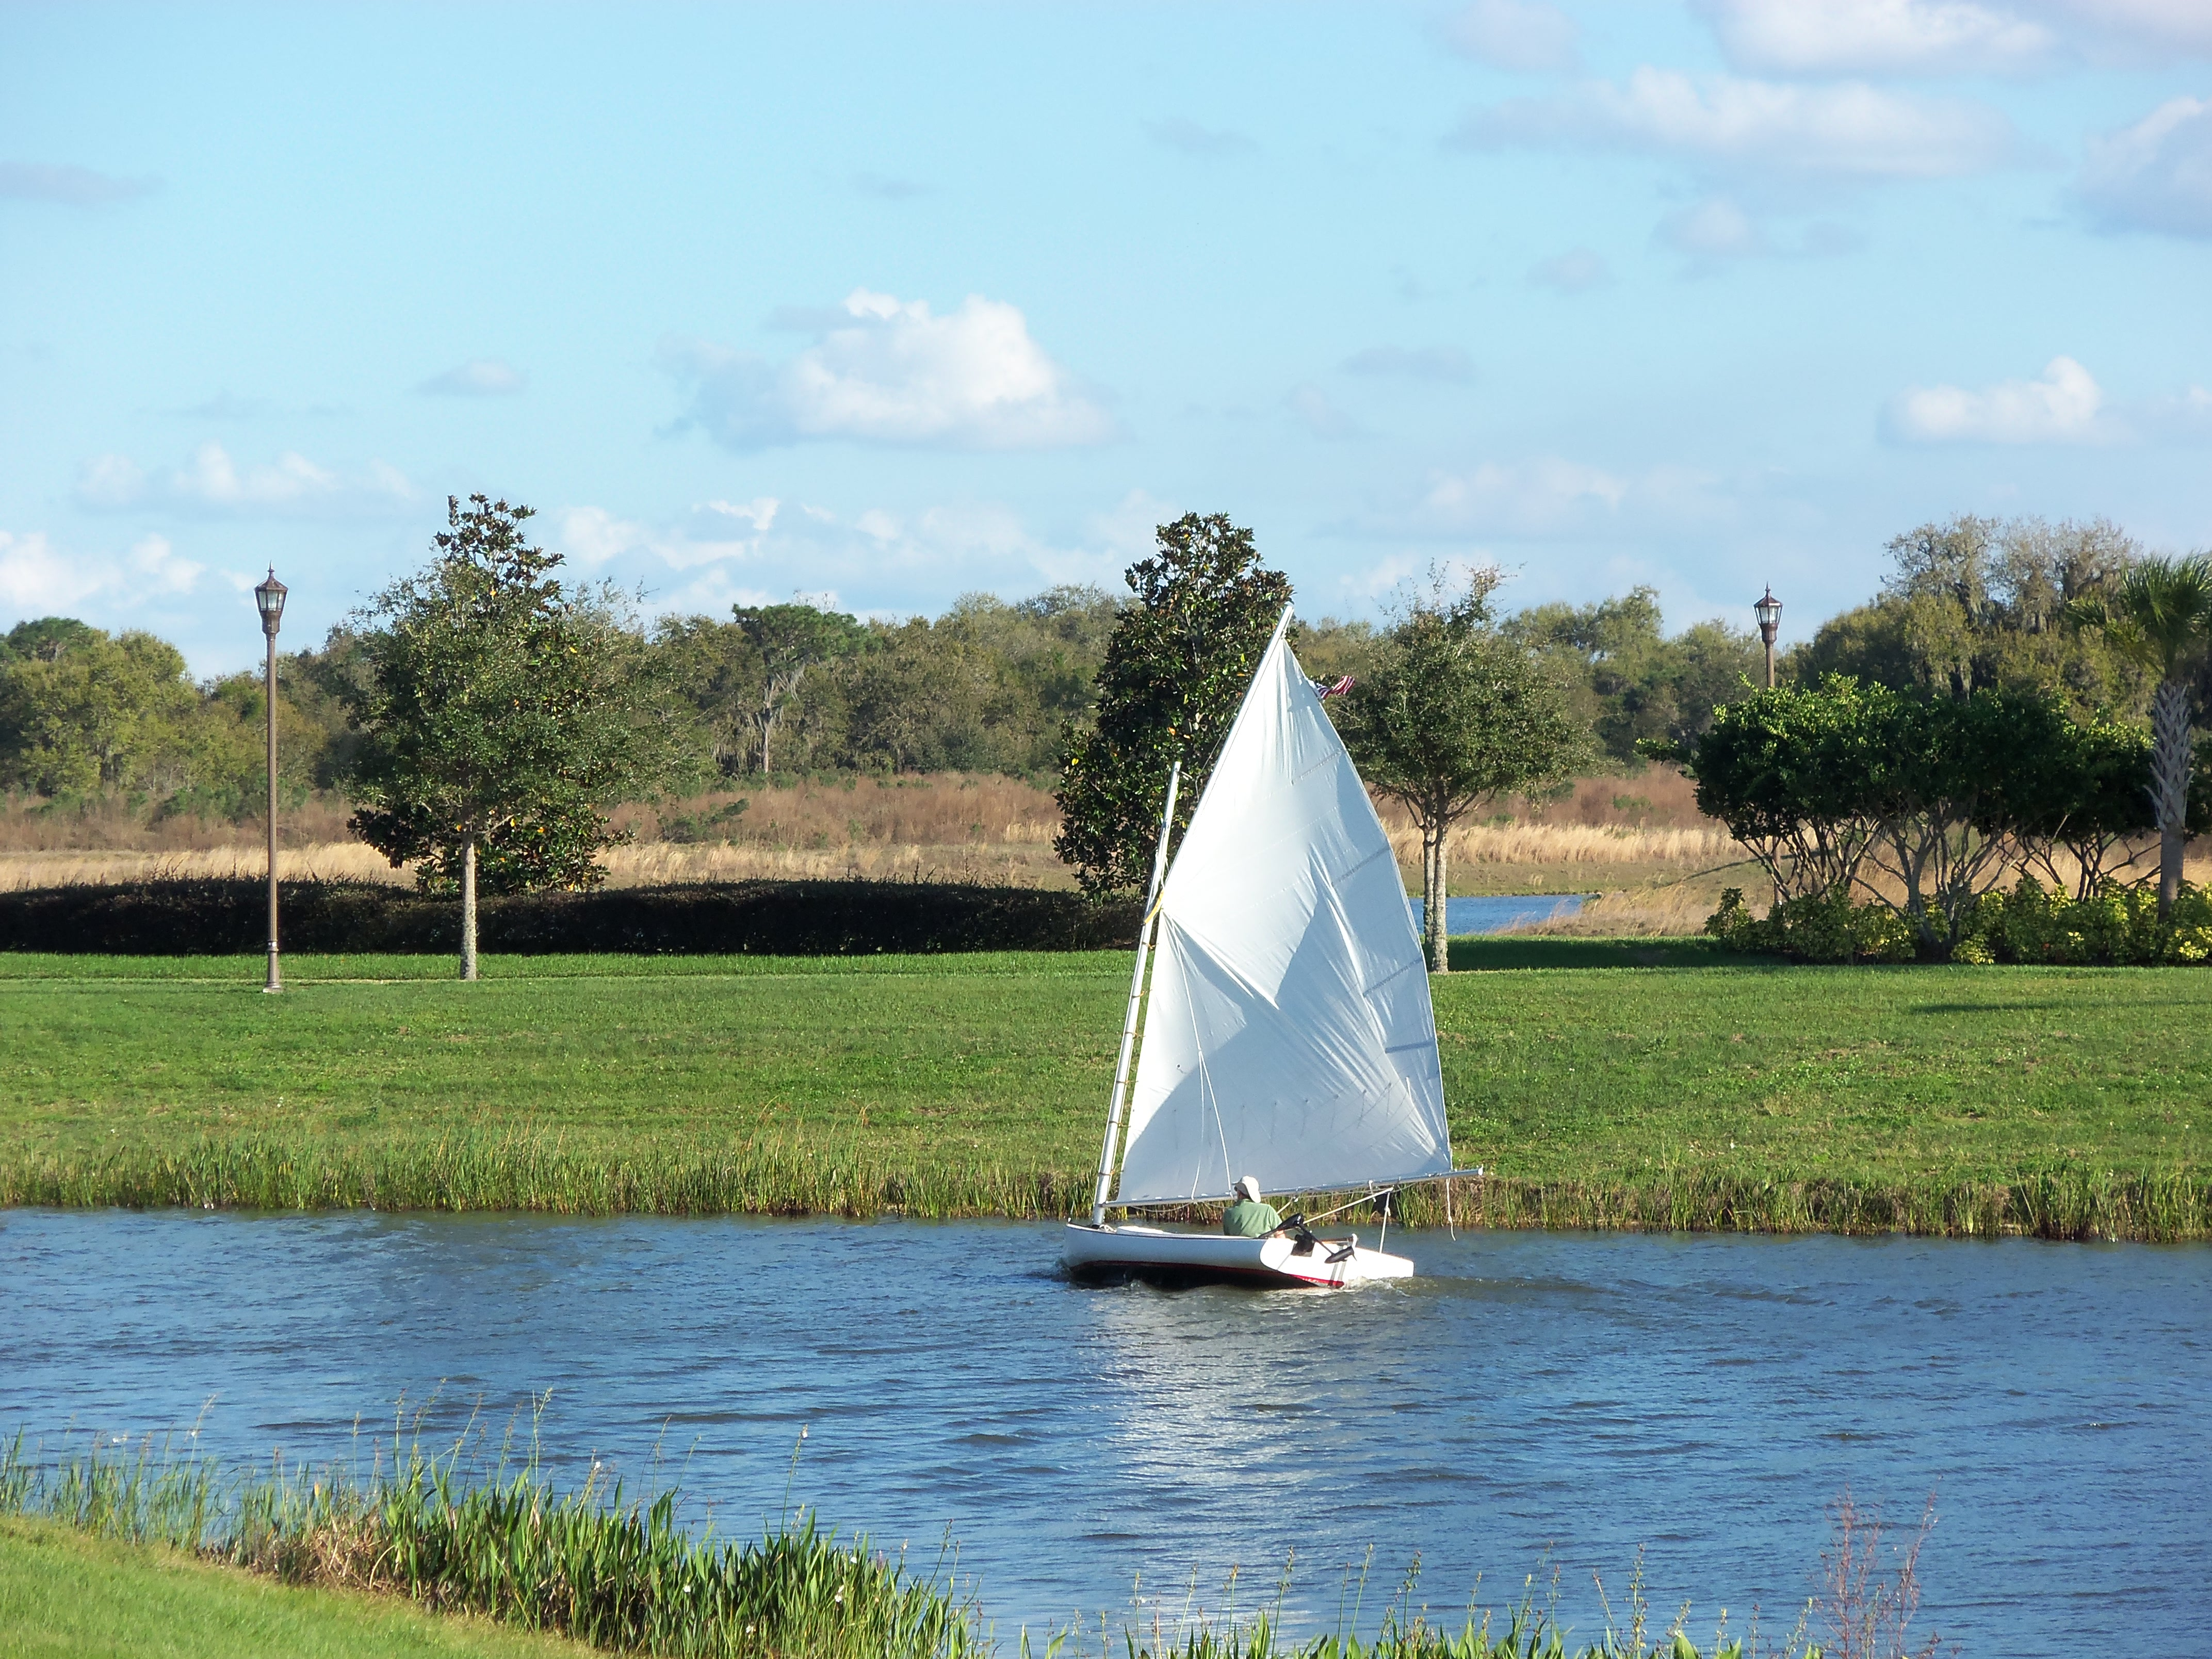 Sailing in Bellalago community